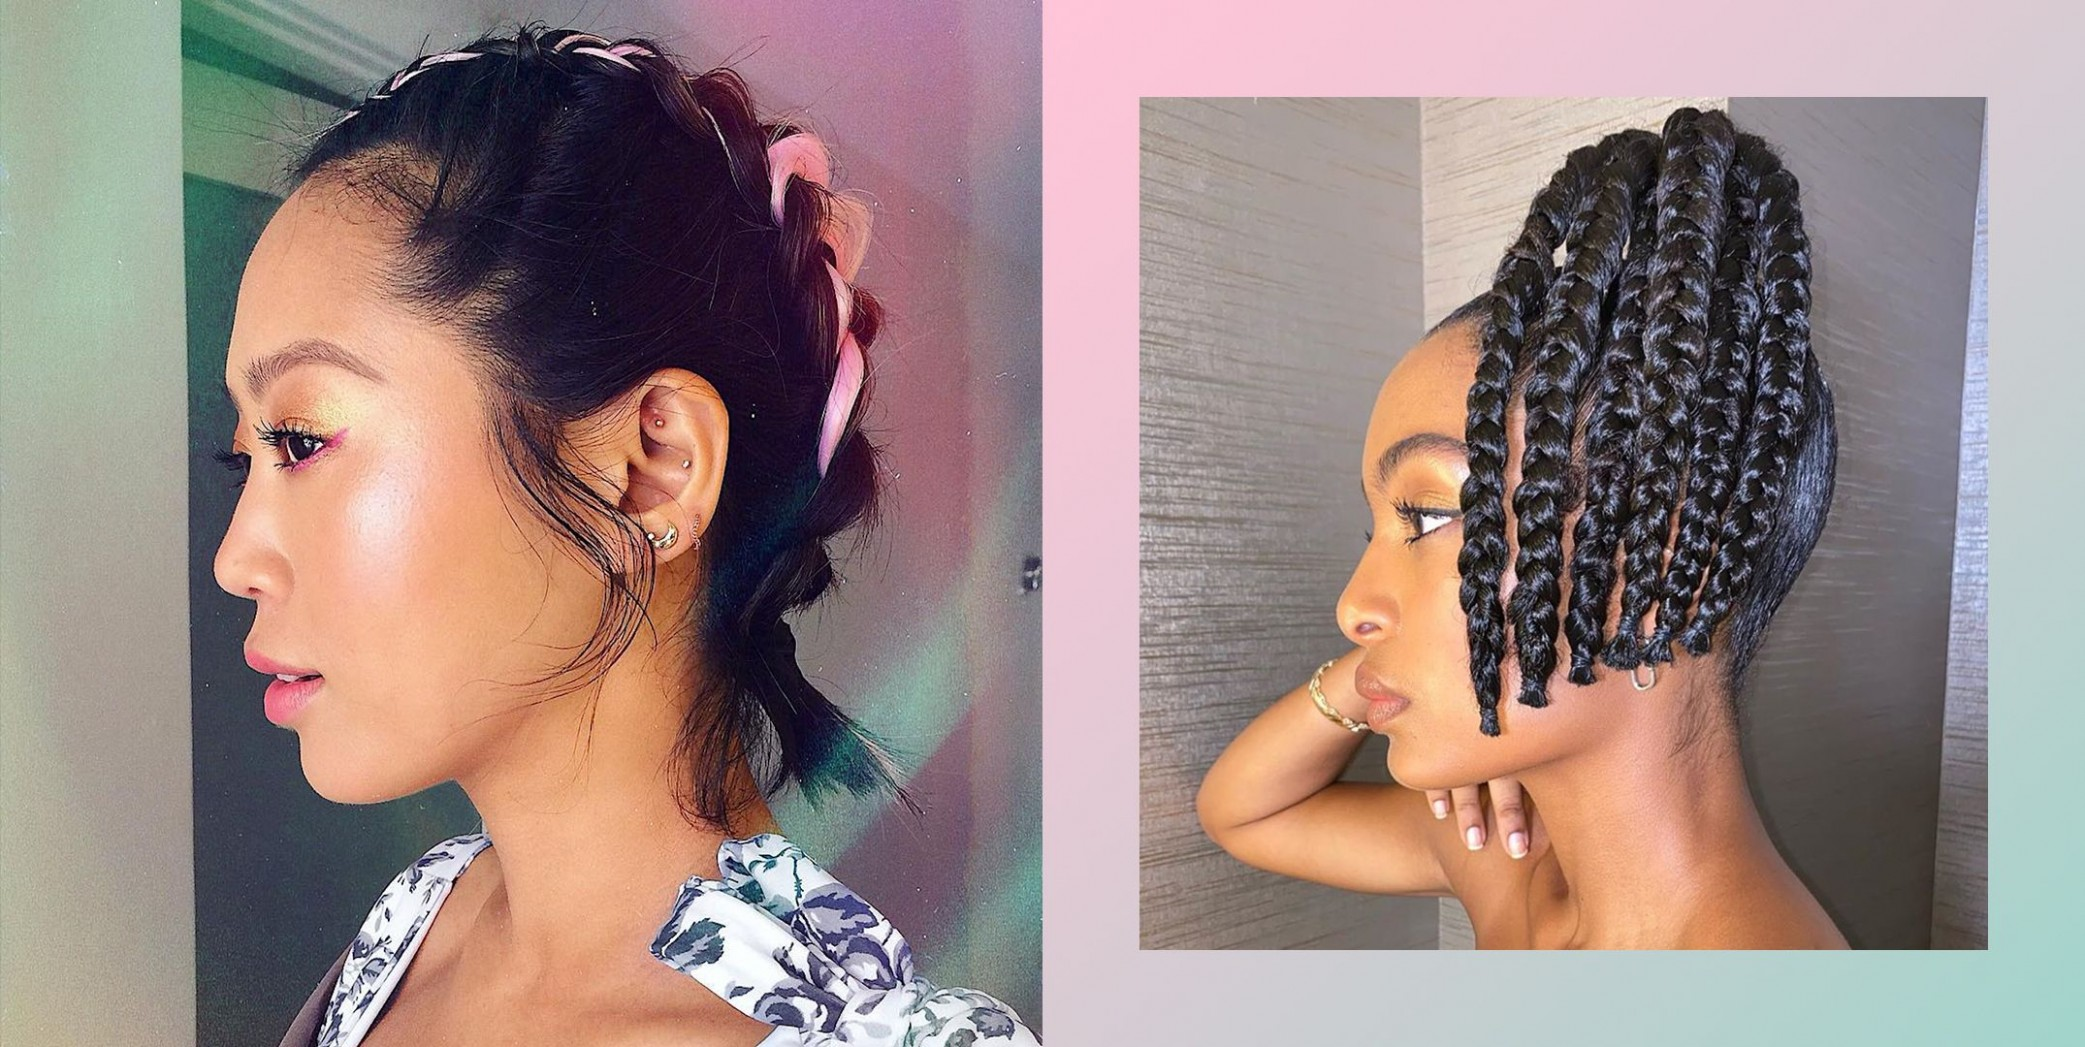 11 Best Braided Hairstyles And Ideas On How To Braid In 11 2 Long French Braids